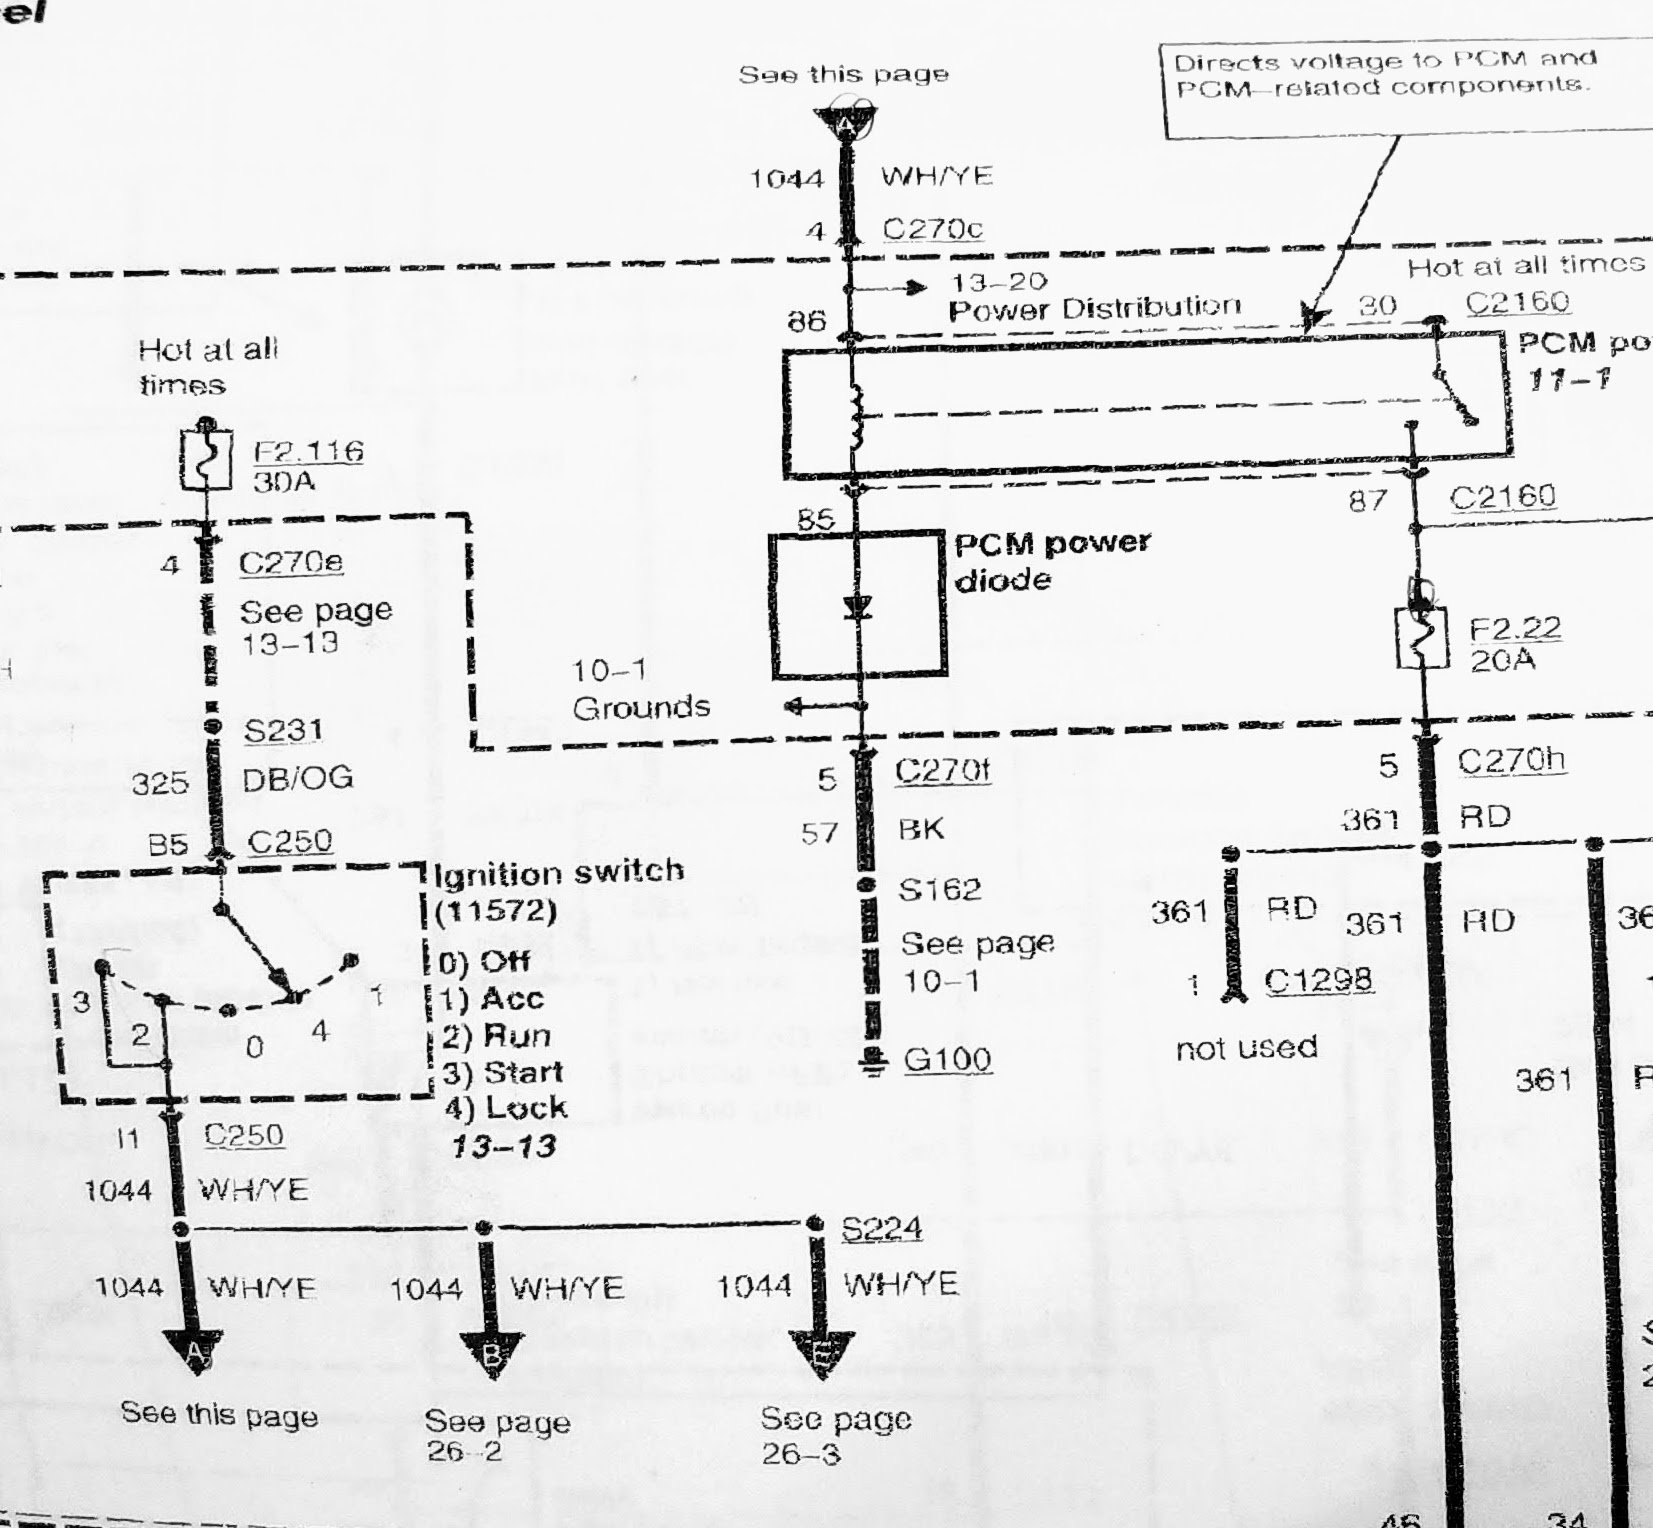 2005 EB 6.0 Excursion PATS like failure cause by PCM relay